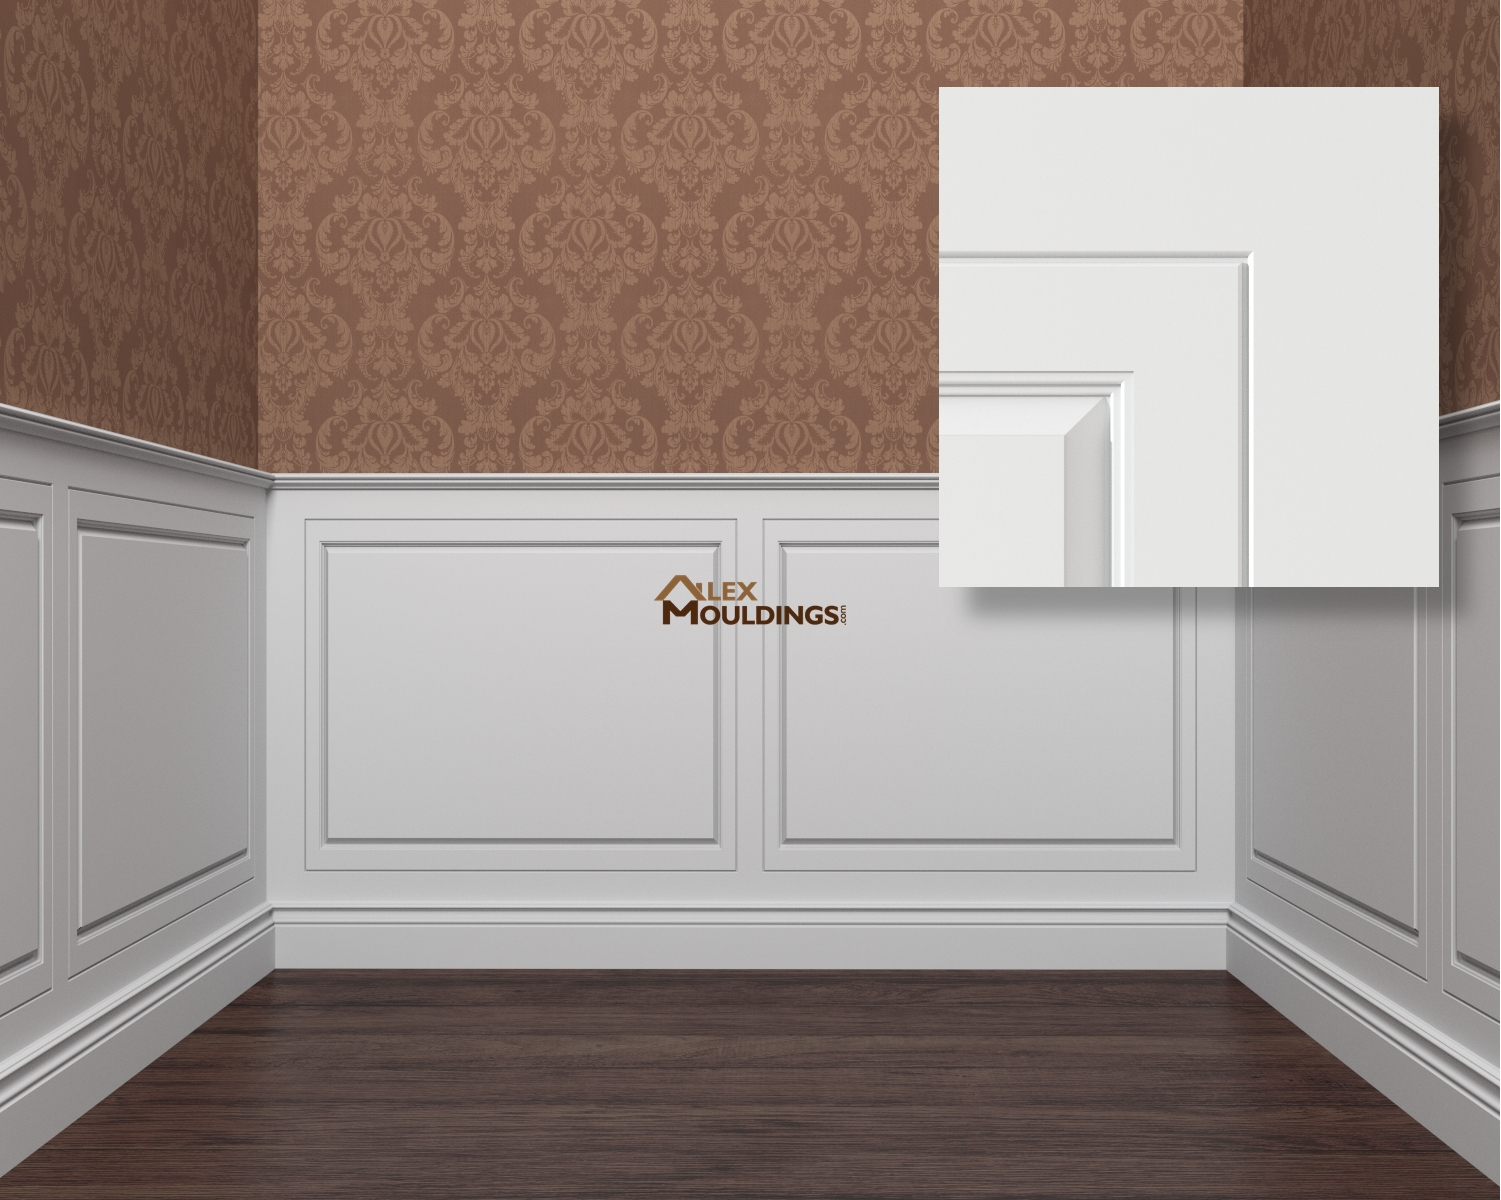 Wainscoting Boards: WALL PANELS WAINSCOTING - Raised